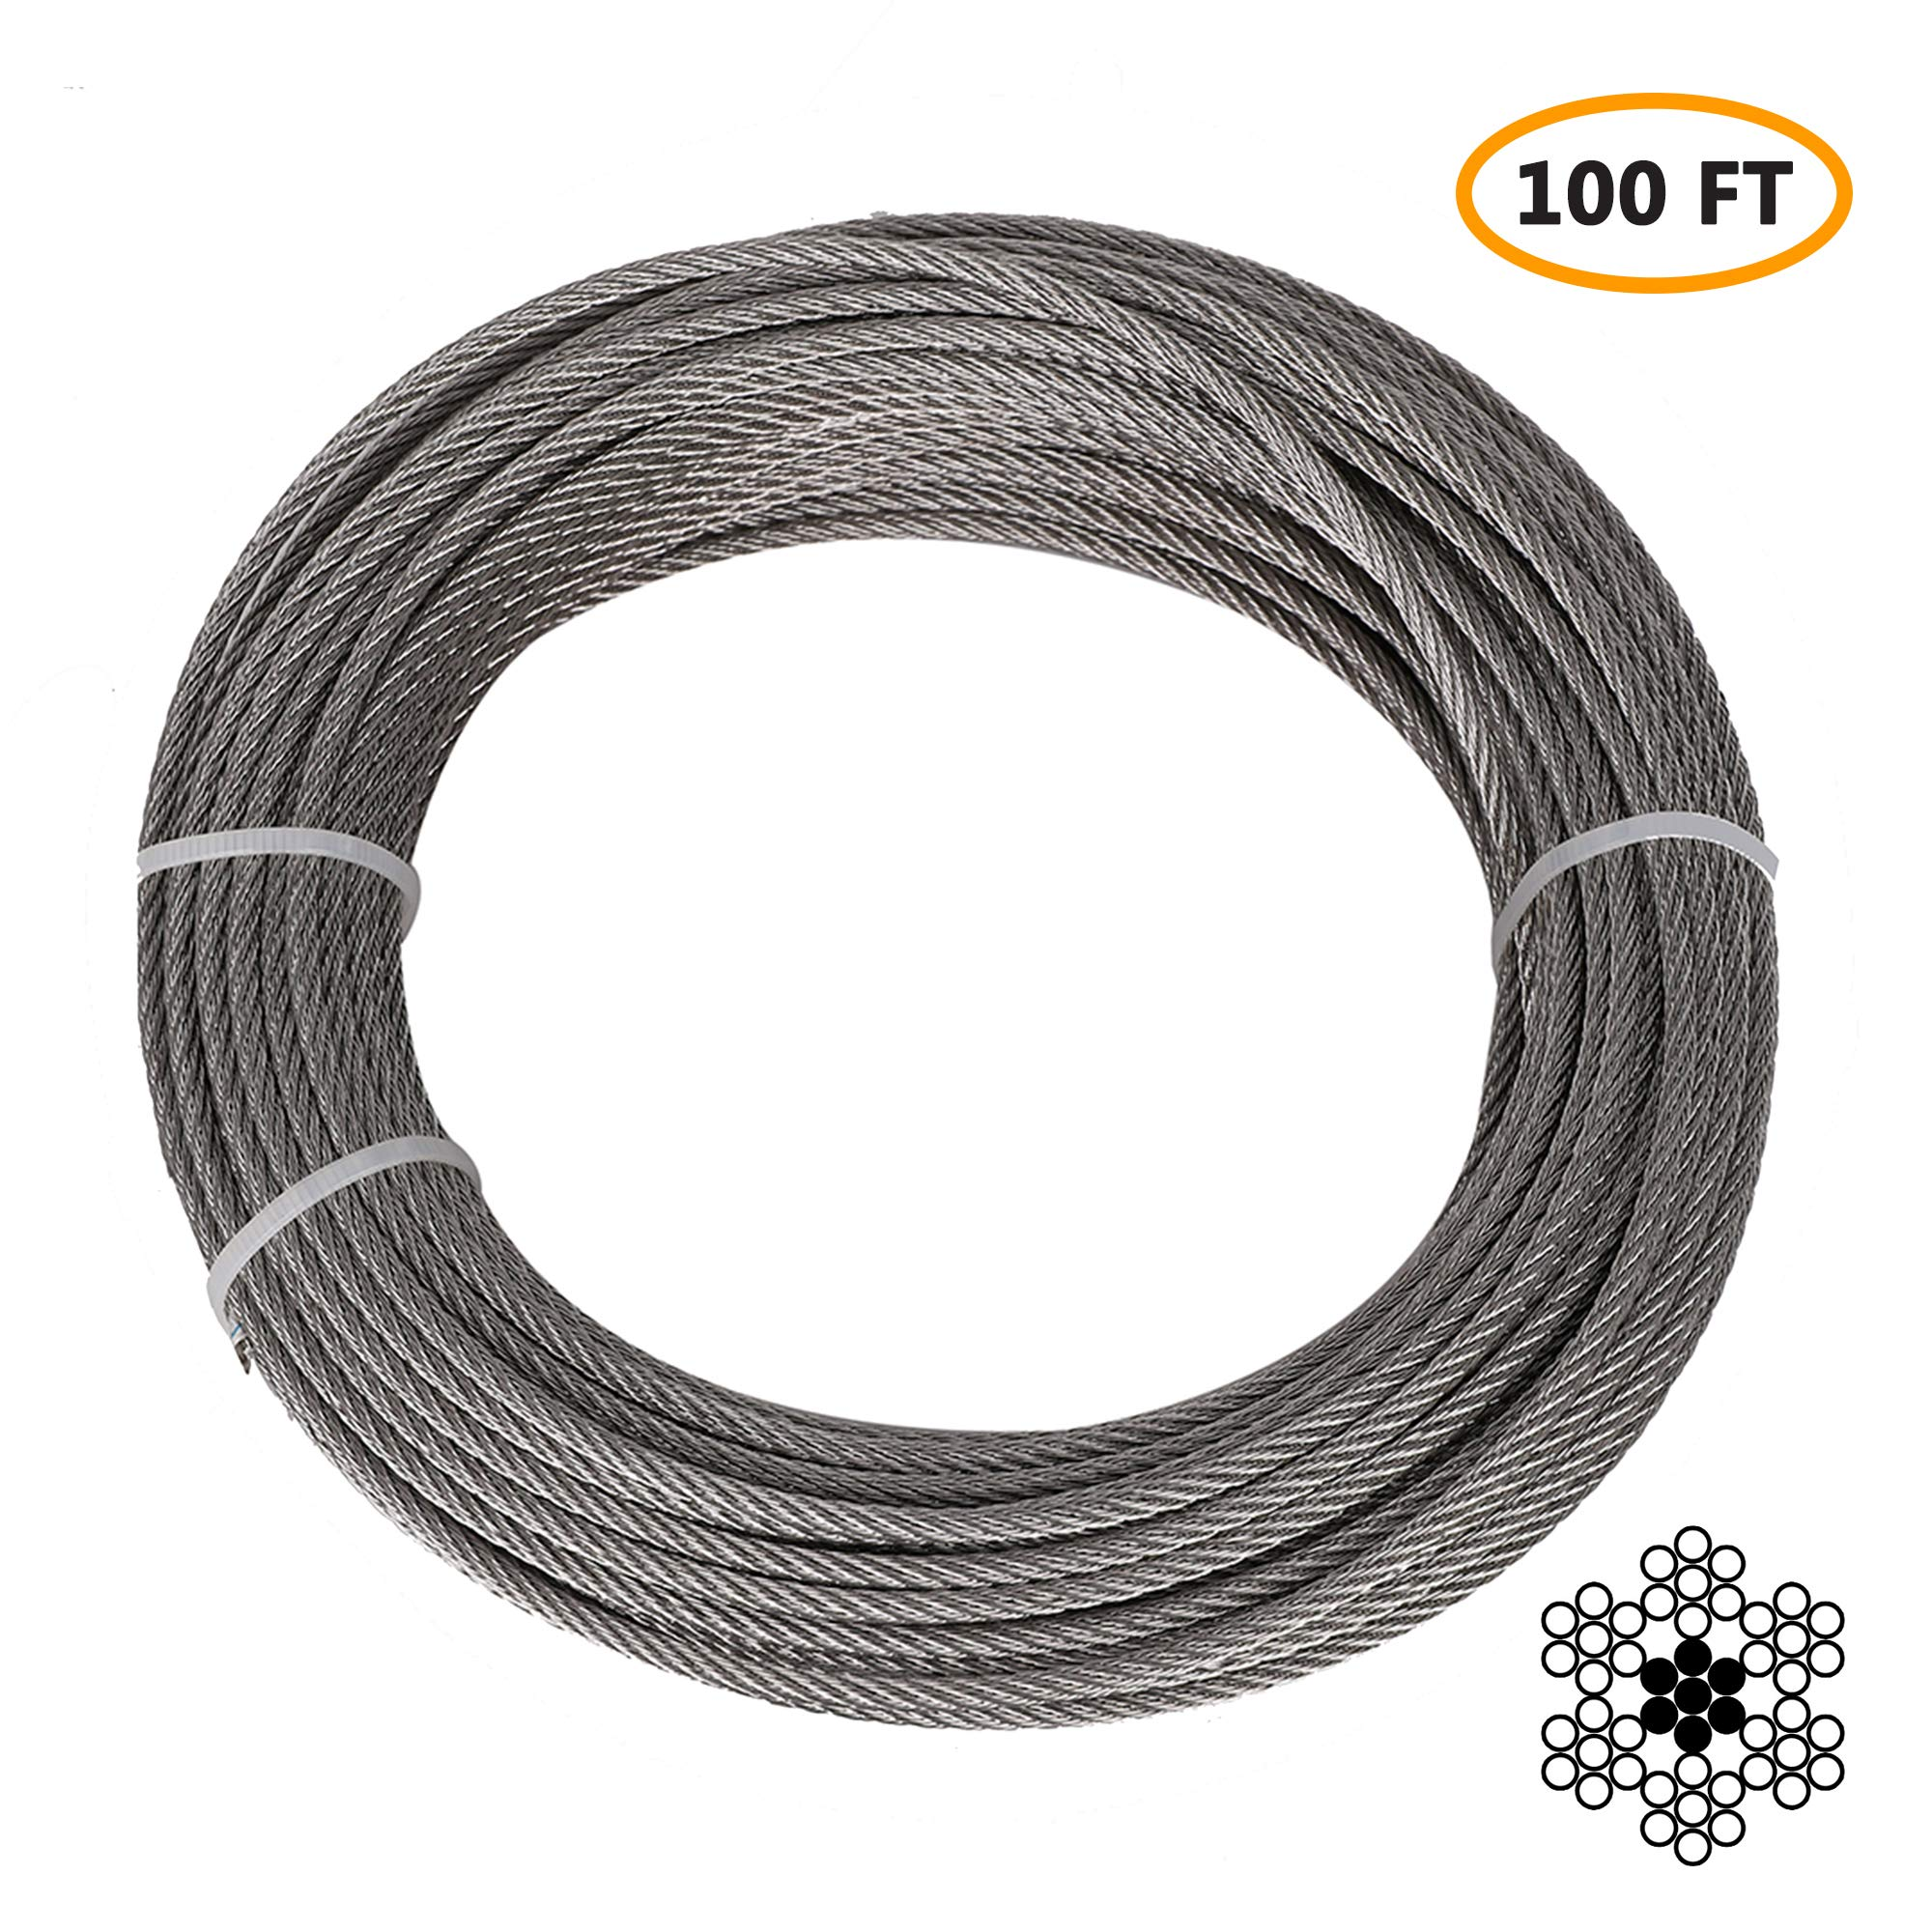 1/8'' Stainless Steel Aircraft Cable, Marine Grade T316 Stainless Steel Wire Rope, Steel Cable for Deck Railing Stair Railing & DIY Balustrade, 7x7 Braided, 100FT by SKD RV Tech